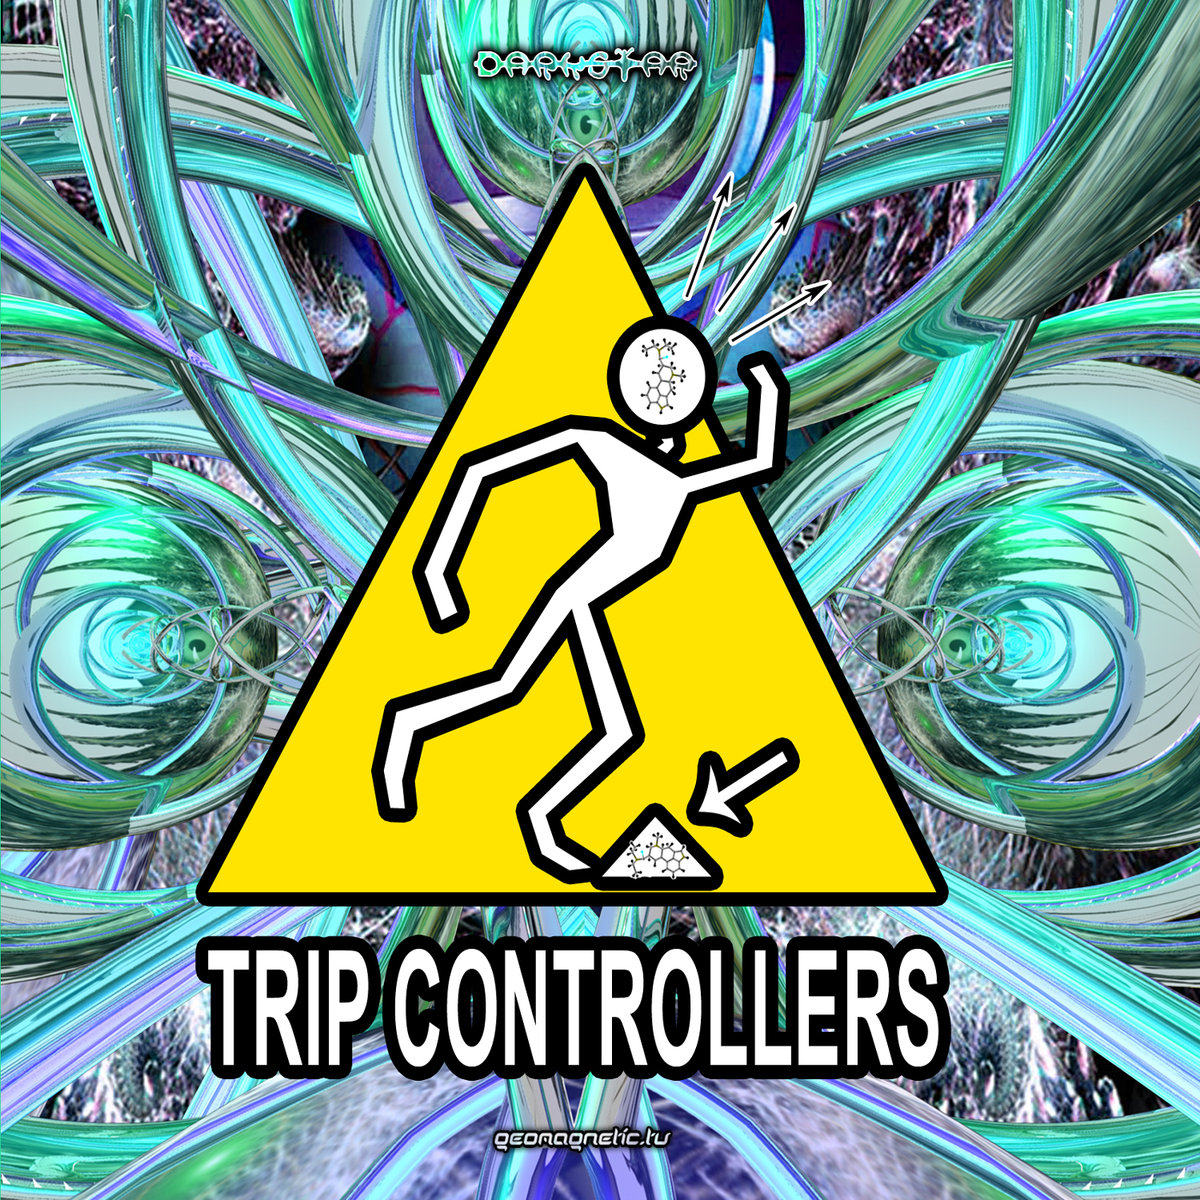 Gorump Peyya - Trip Controller @ 'Various Artists - Trip Controllers (Compiled by Dr. Spook)' album (electronic, goa)